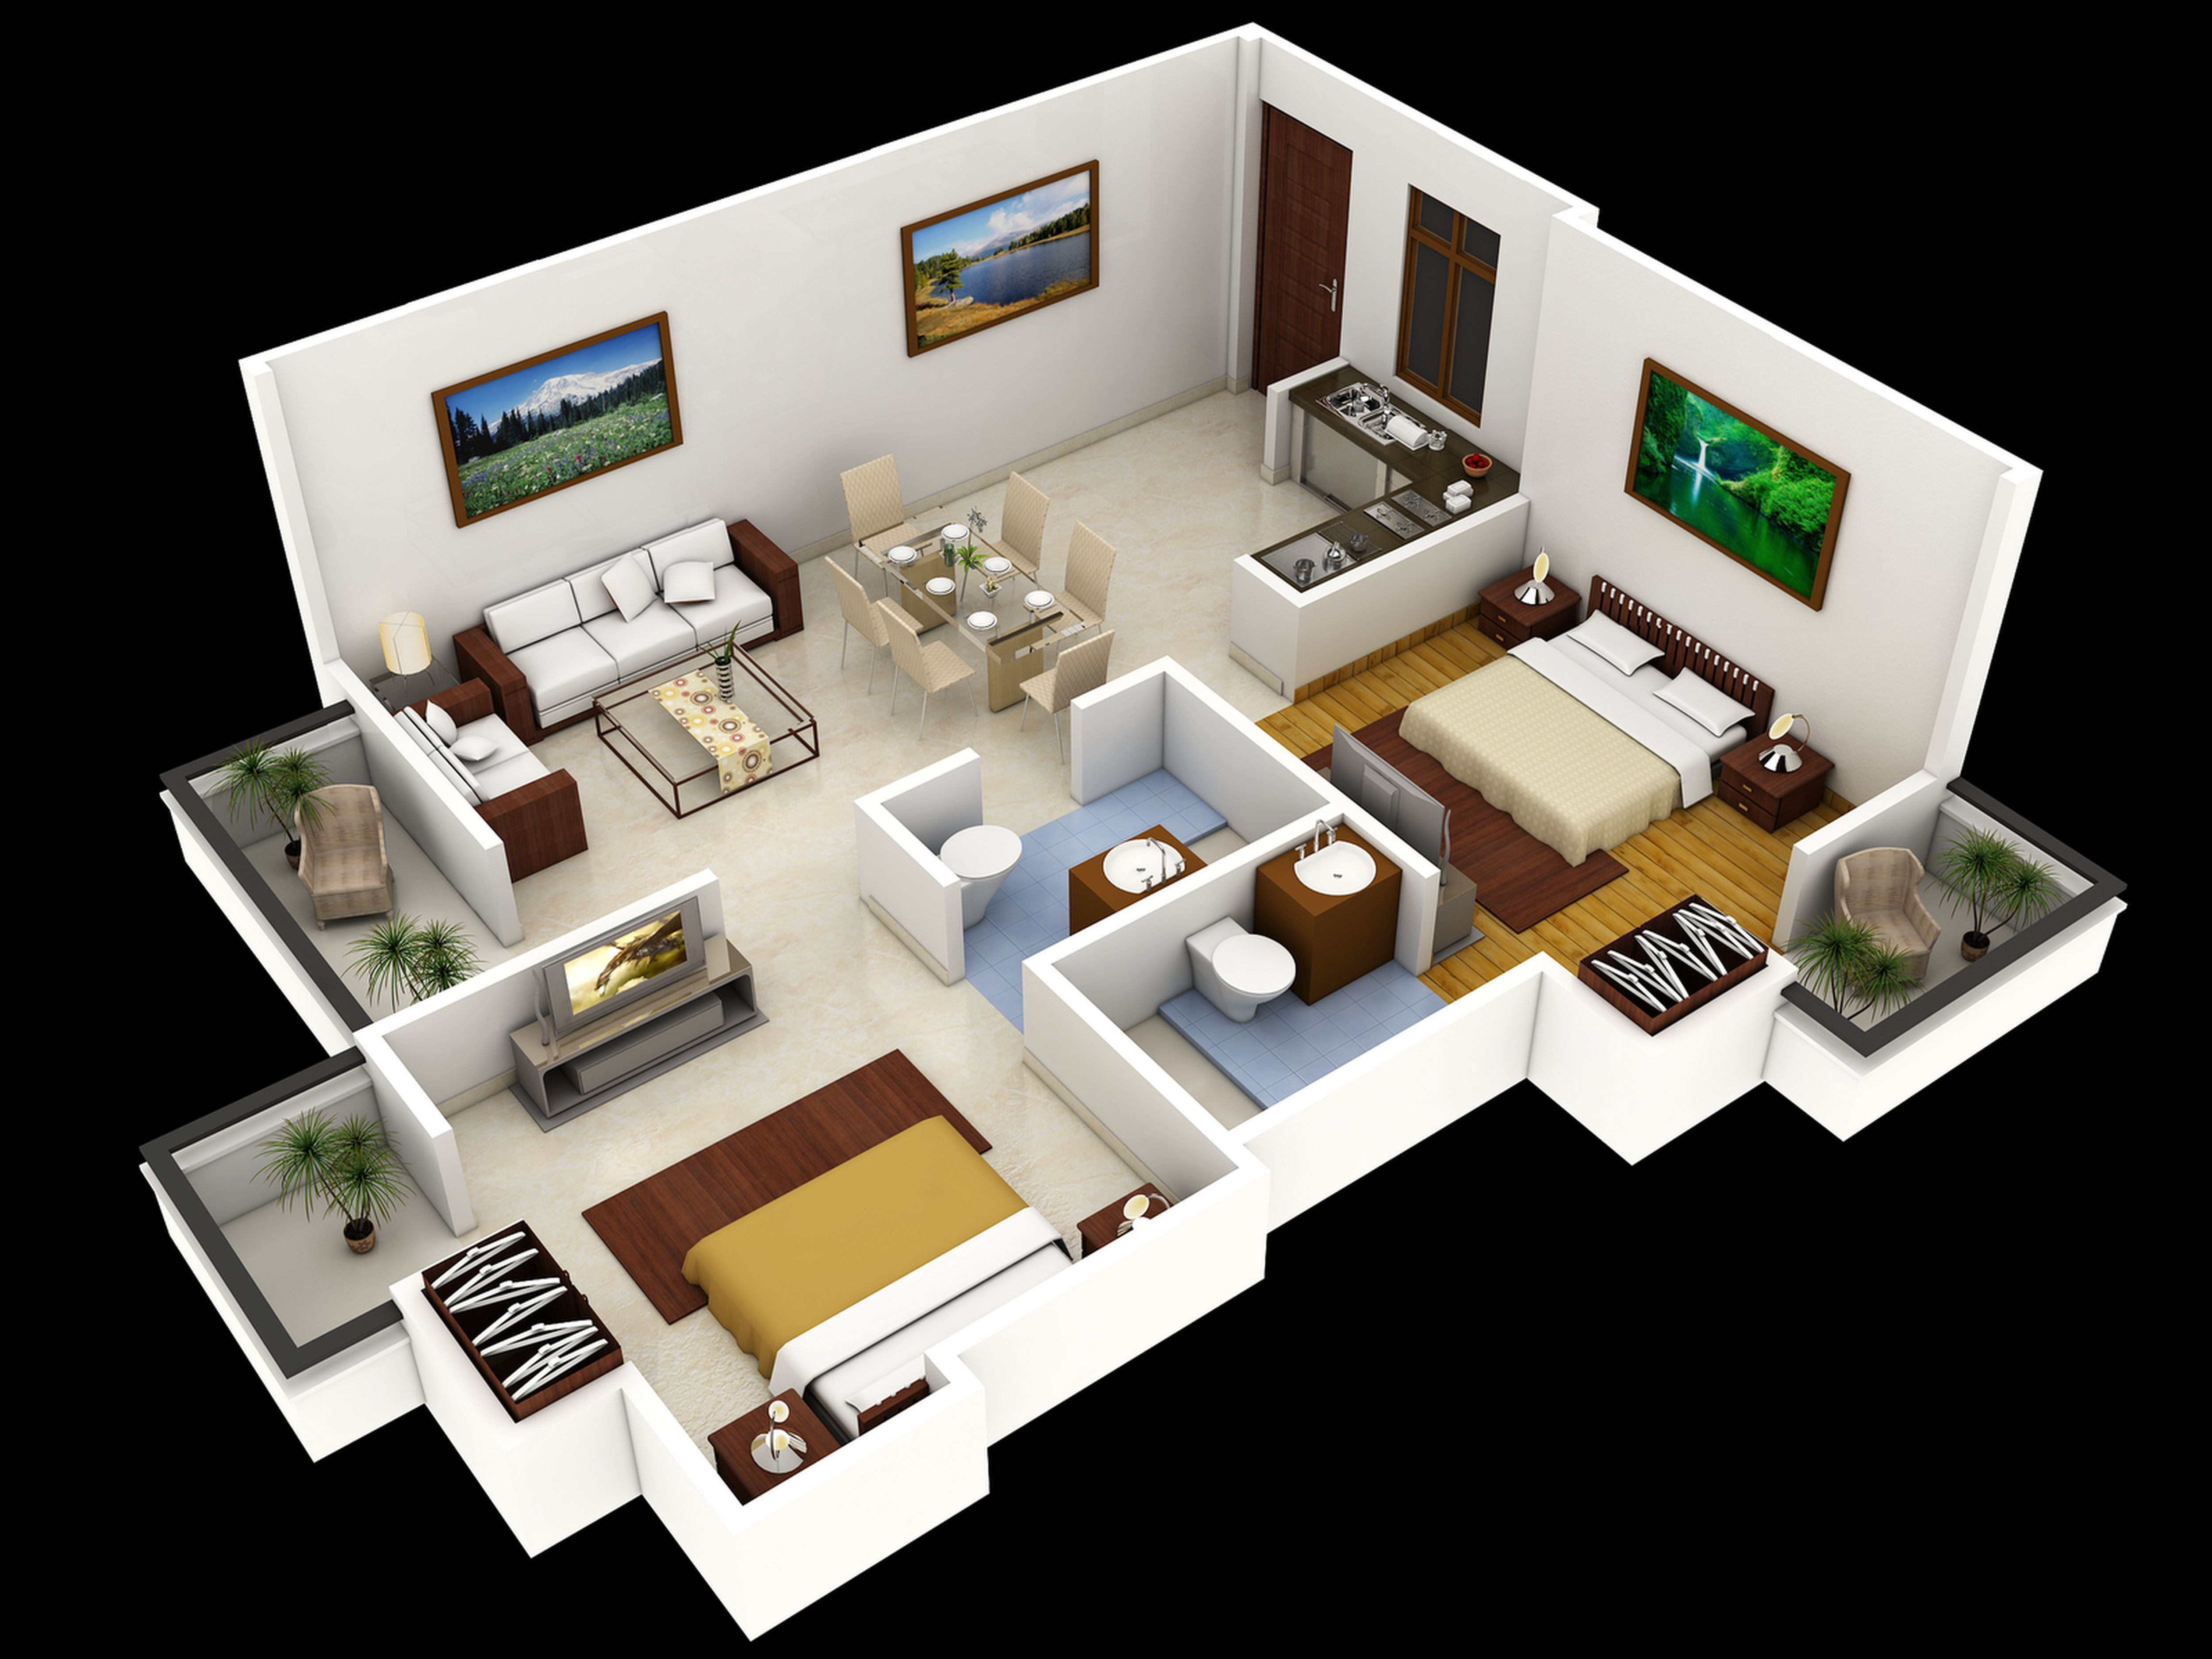 3D Small Home Floor Plans #smallhome #houseplan